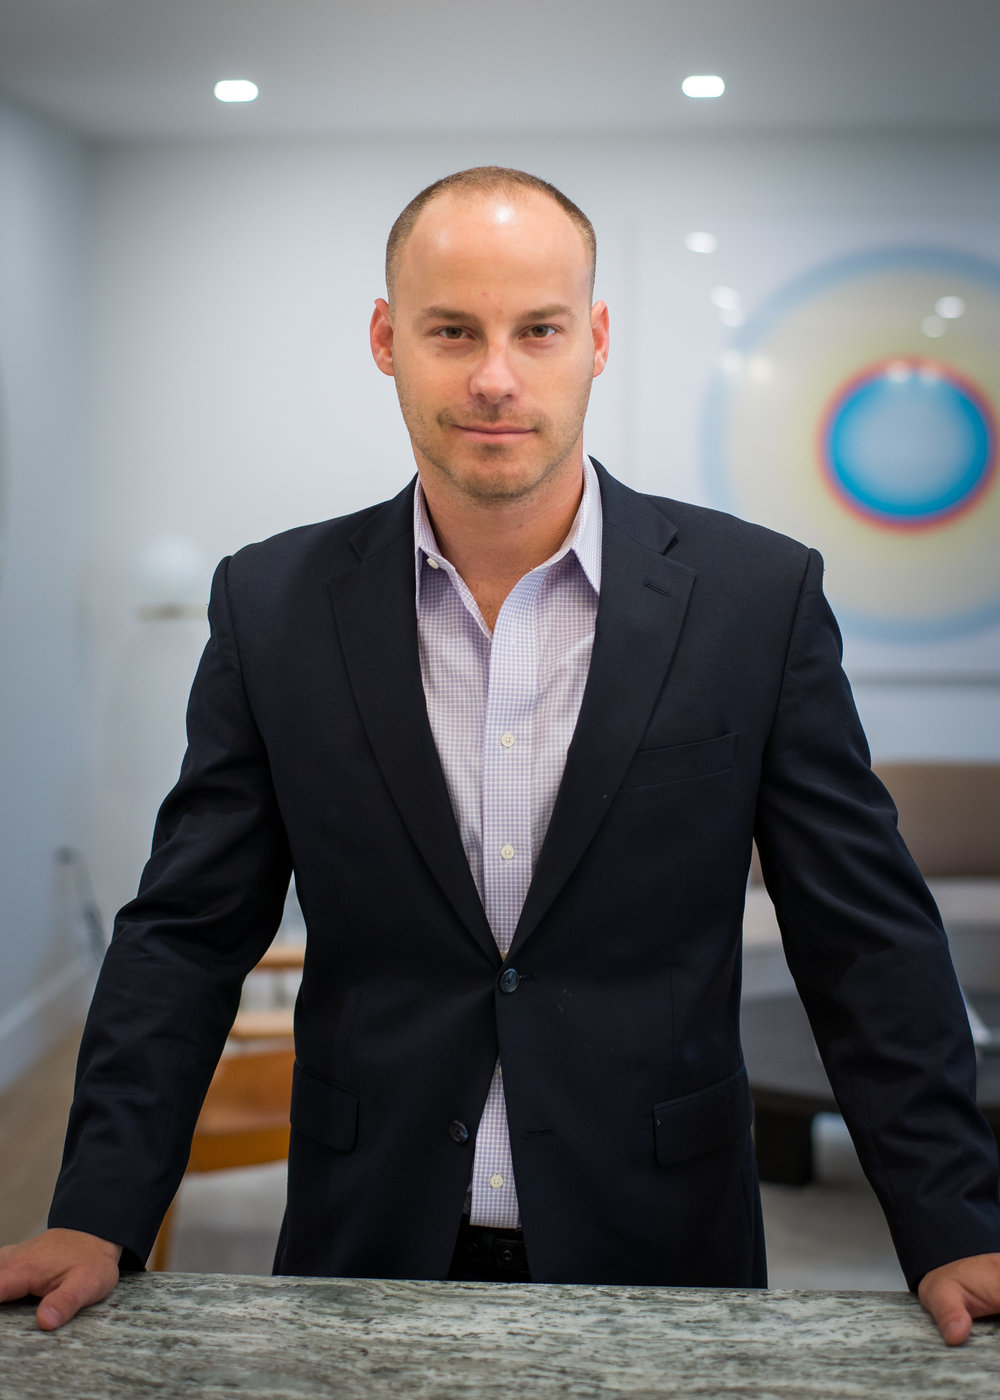 Jeremy Waks, Principal of Oak Ventures, LLC.